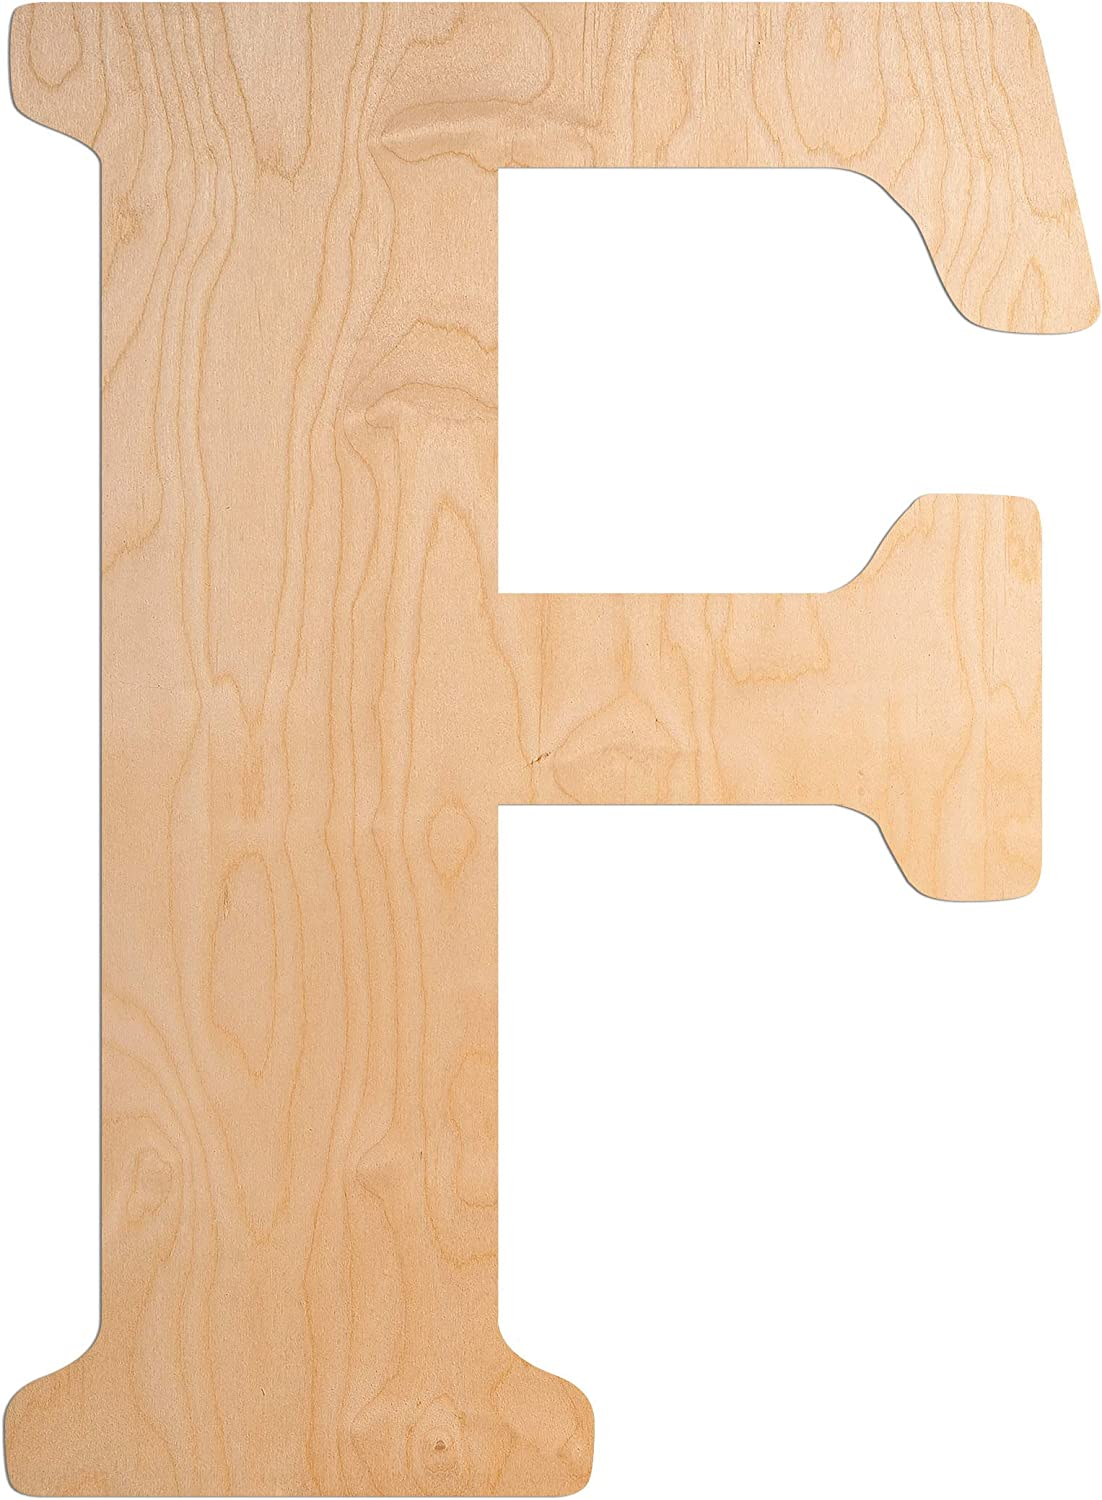 UNFINISHEDWOODCO 18 Inch Vintage Style Wooden Letter Monogram for Home Décor - Unfinished Vintage Wood Large Initials for Bedroom or Kitchen, Wall Art Above Baby Crib, Nursery or Teen Room - Letter F